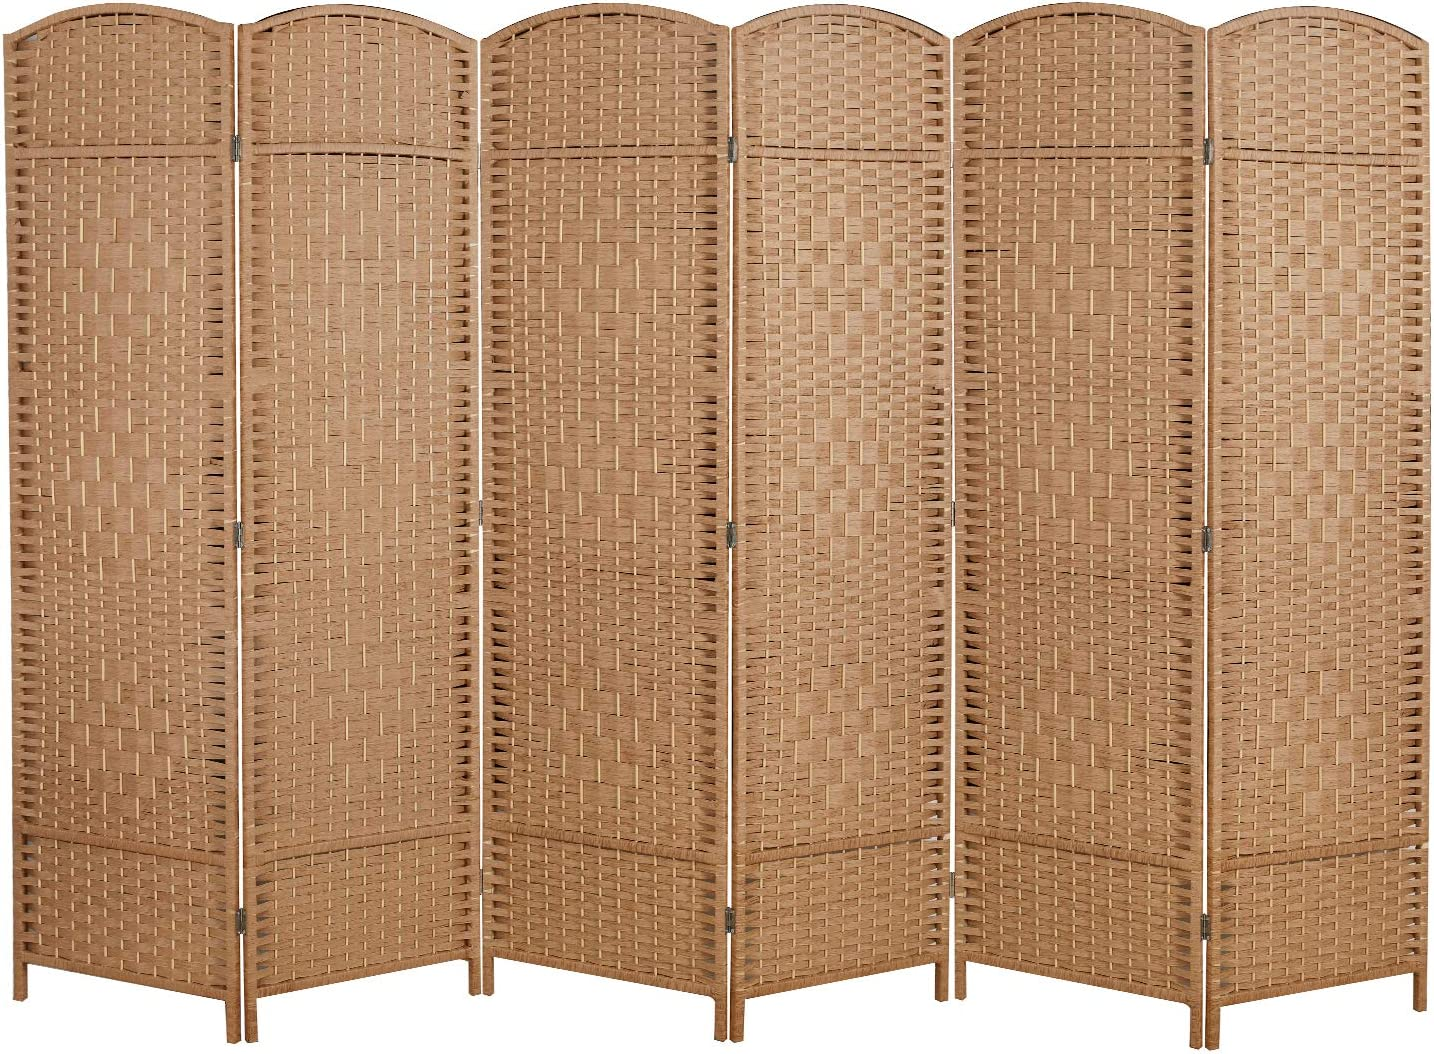 COCOSICA Room Divider trust and Folding Privacy Extra Tall Store W Screen -